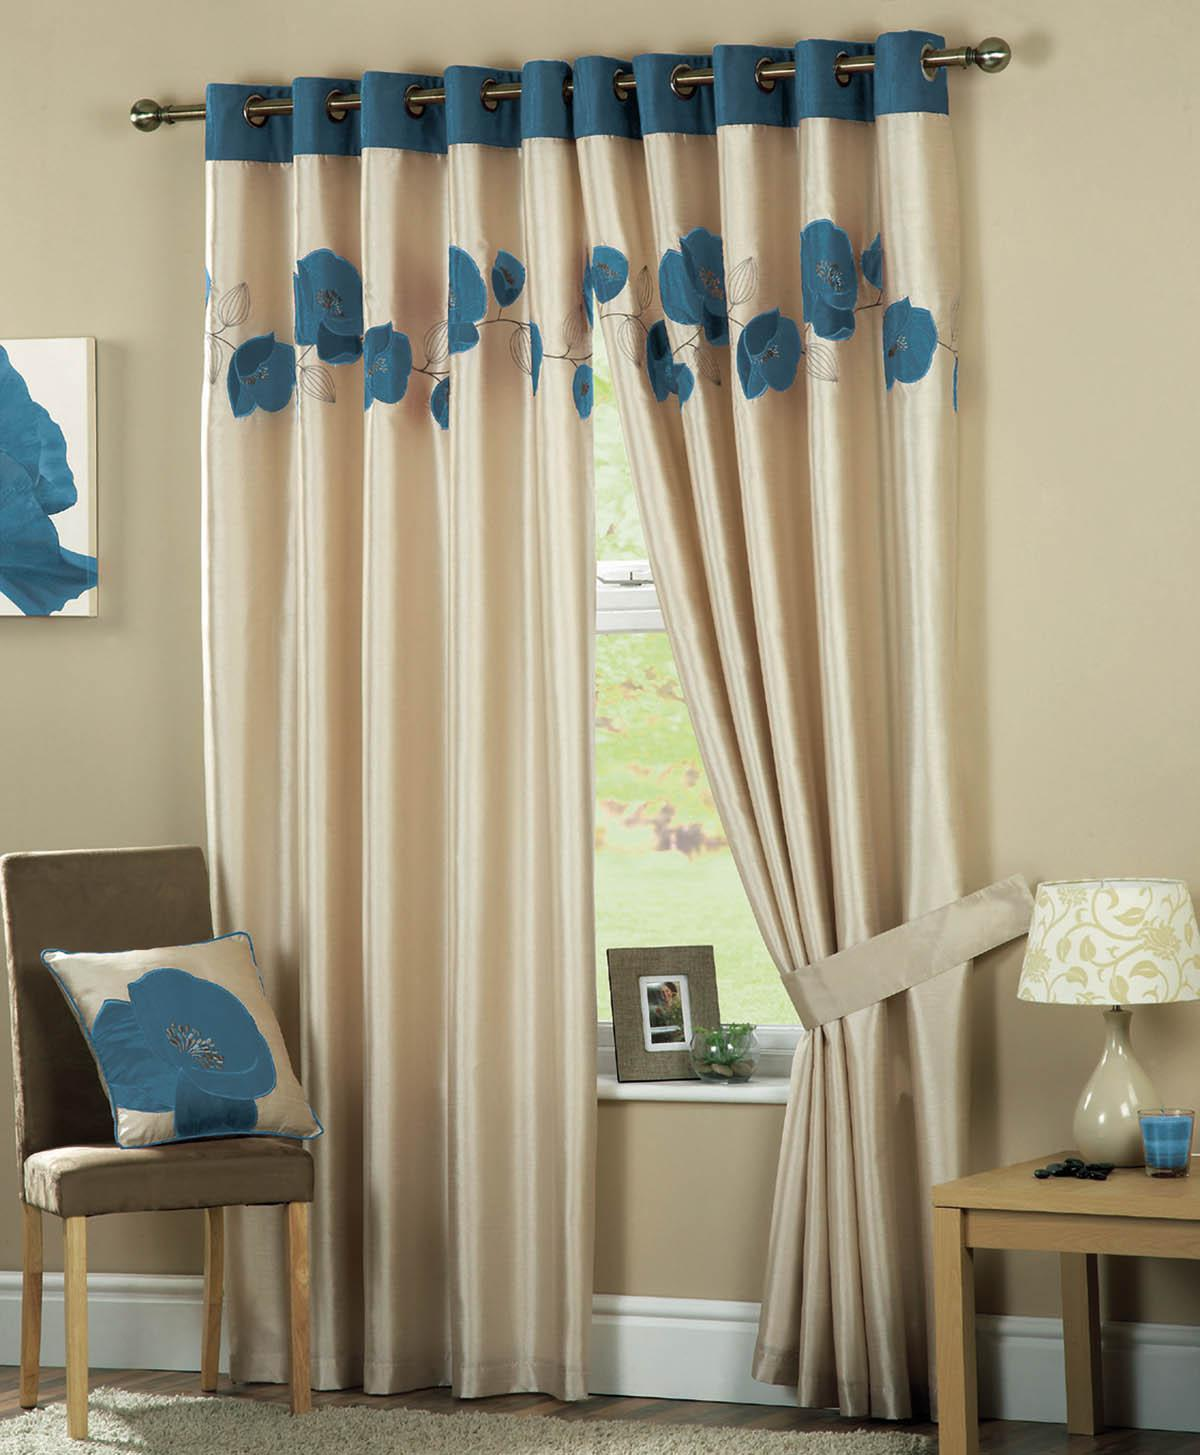 Danielle Eyelet Lined Curtains Teal Cheap Ring Top Curtains UK